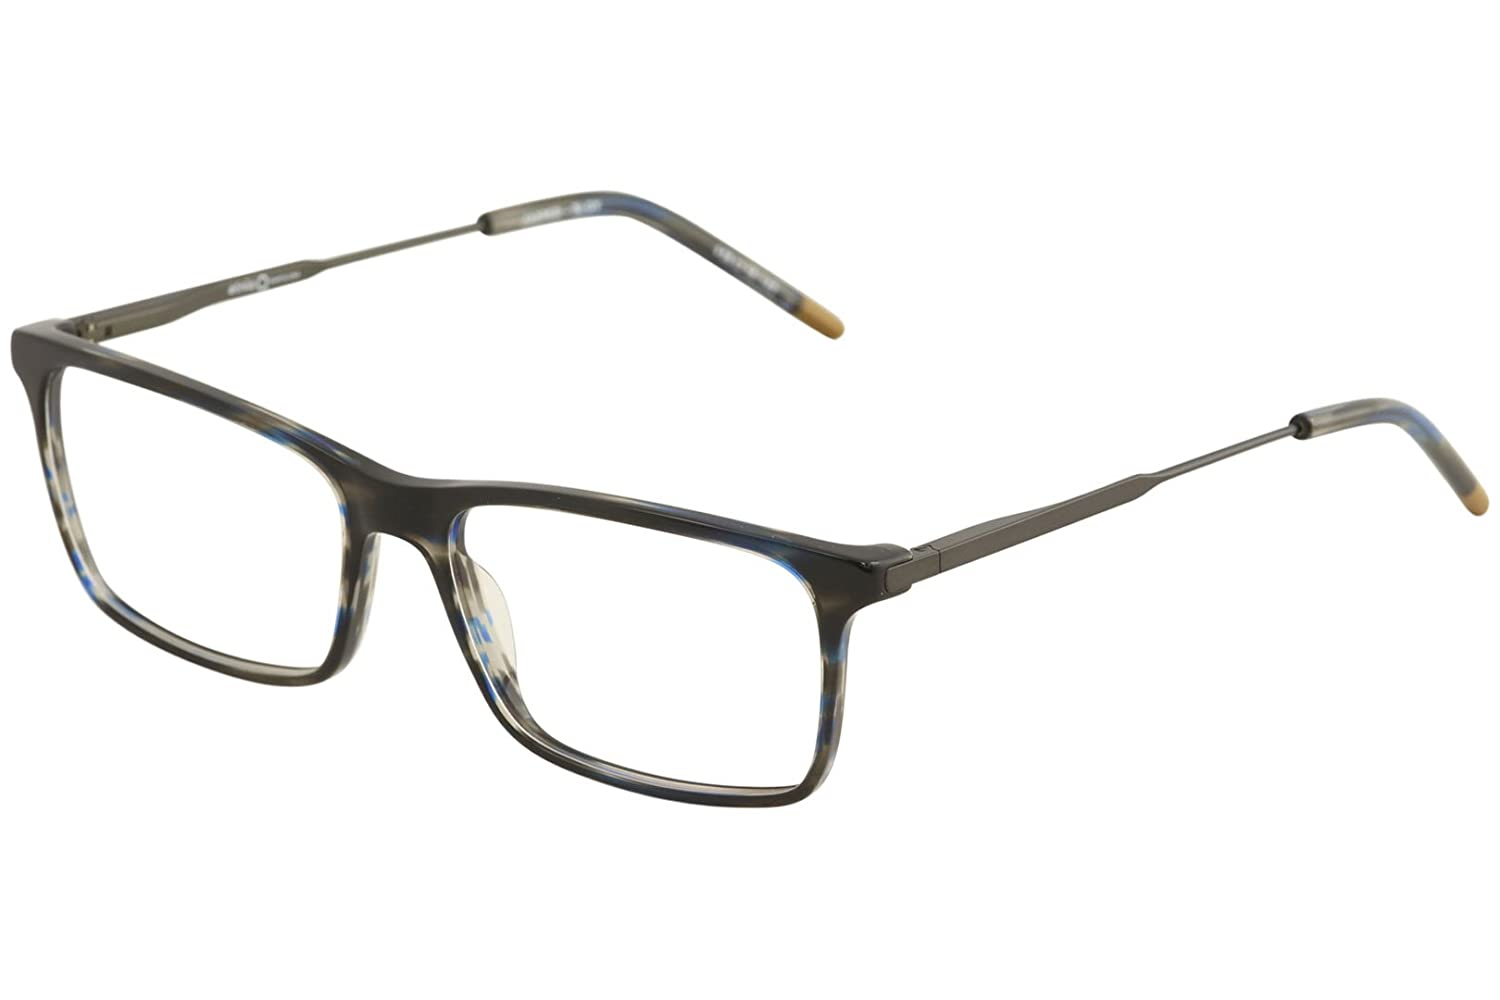 a5bd6325c3 Amazon.com  Etnia Barcelona Men s Eyeglasses Jasper BLGY Blue Grey Optical  Frame 56mm  Clothing